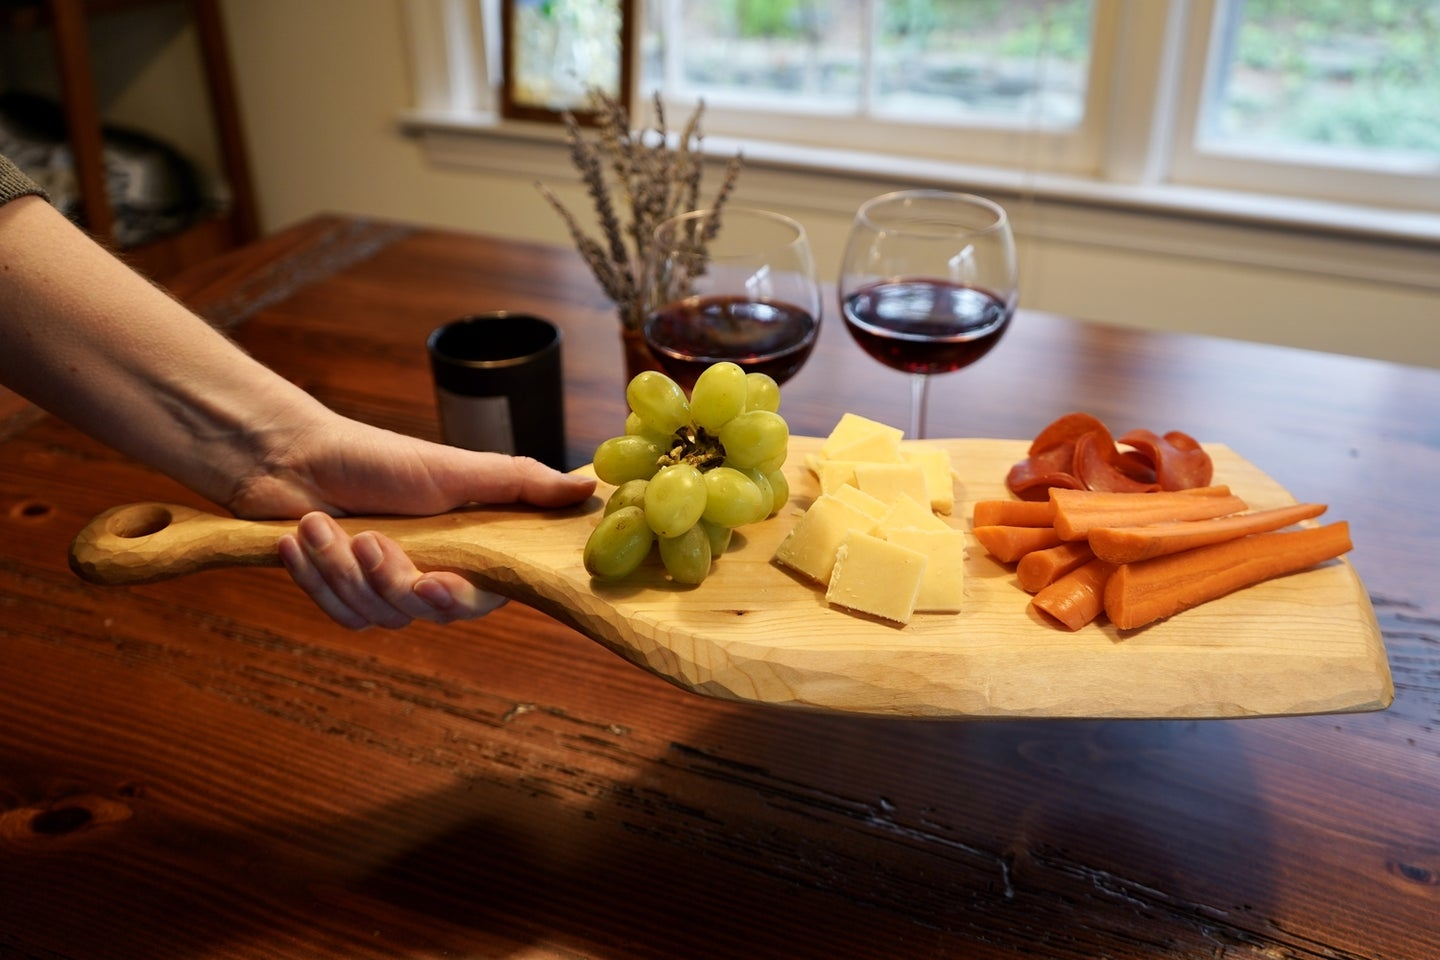 a person holding a handmade DIY cutting board with cheese, grapes, carrots, and strawberries on it